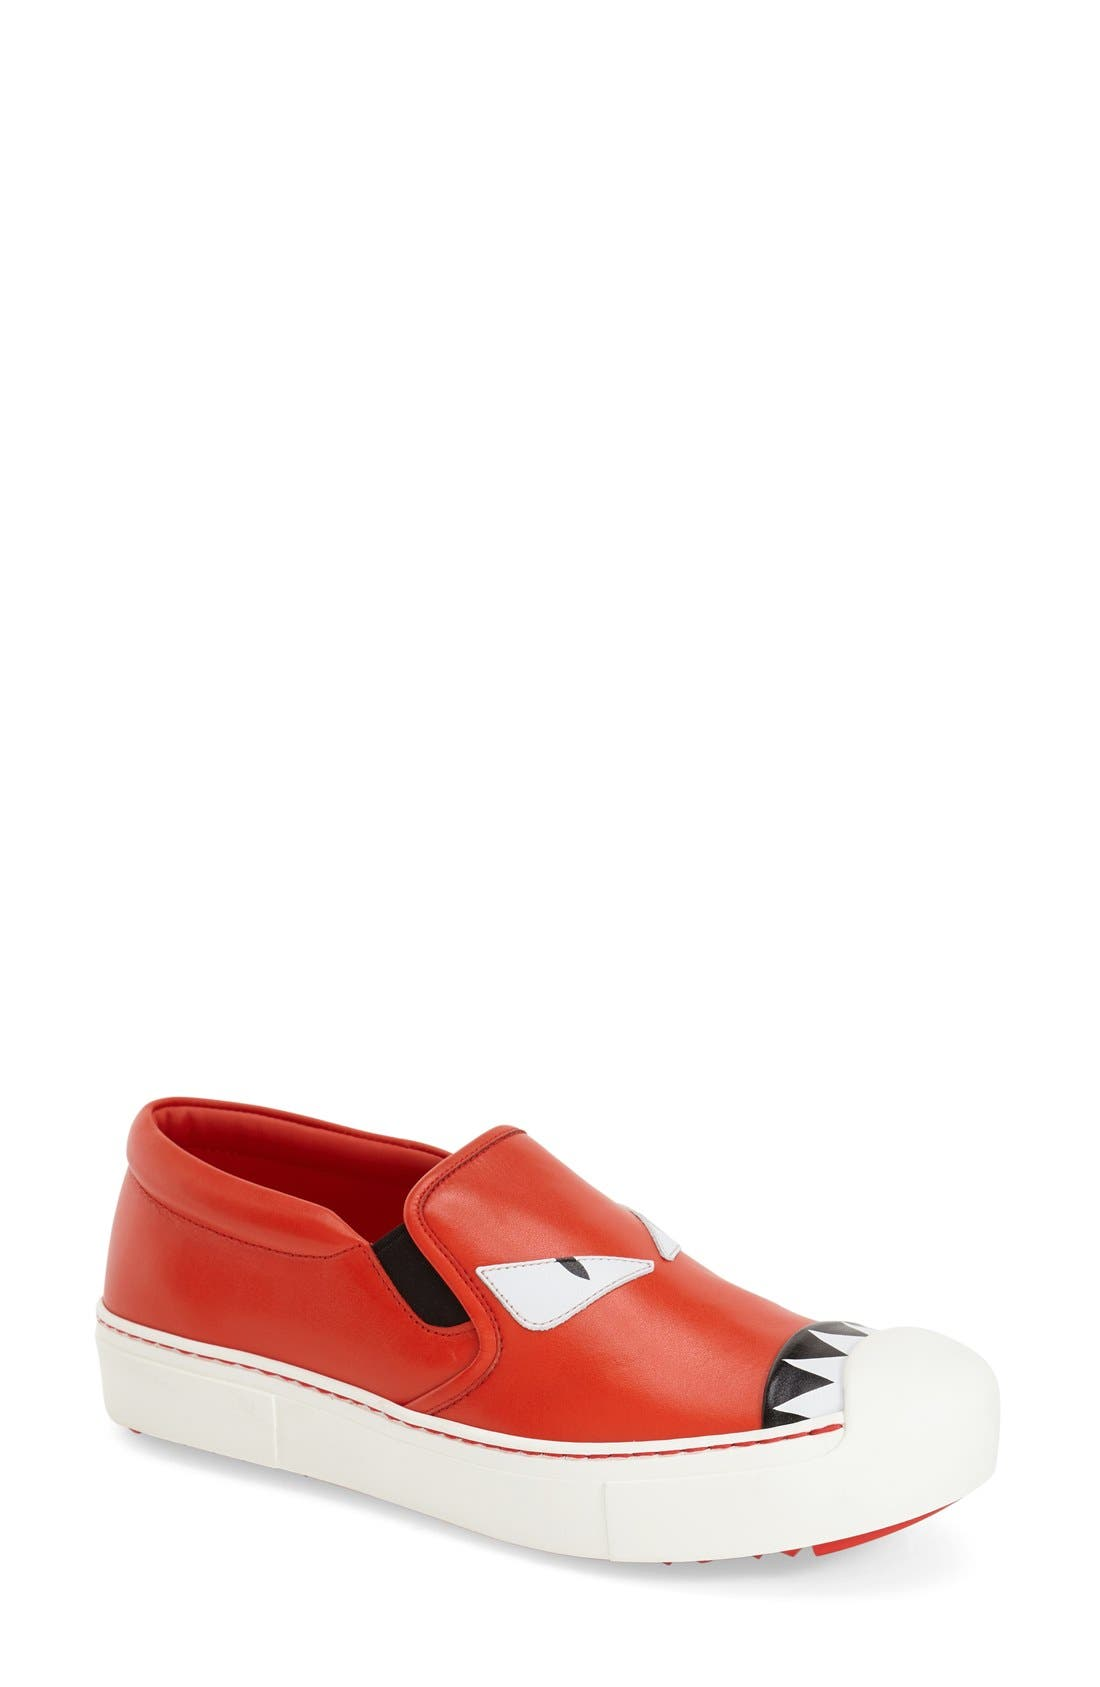 Monster Sneaker,                         Main,                         color, Papvero Leather